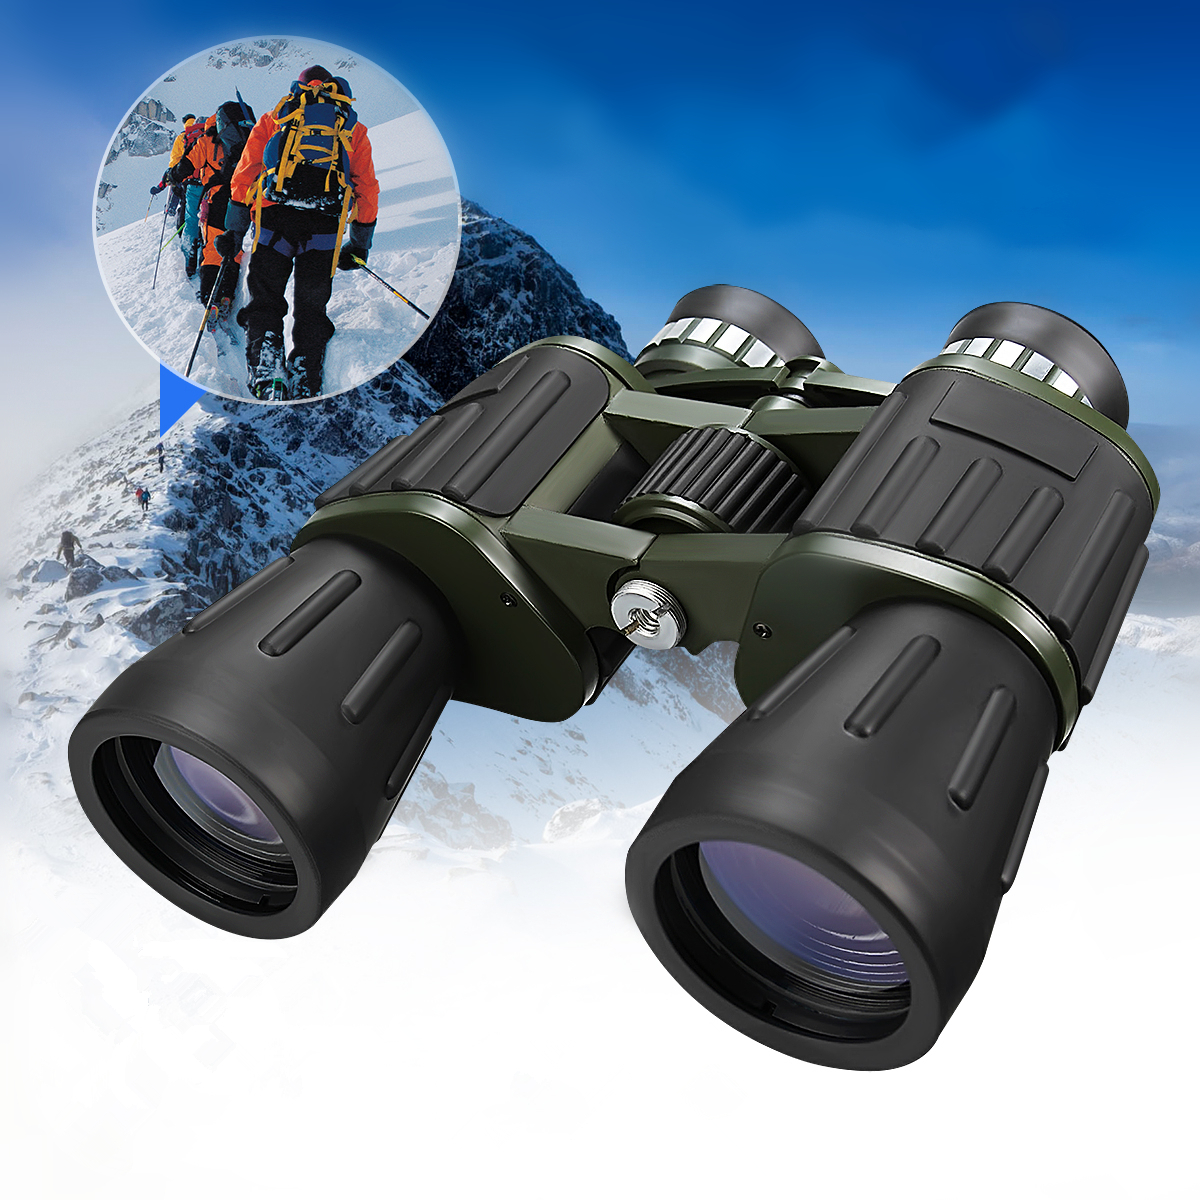 Banggood price history to 60x50 Military Army Zoom Powerful Telescope HD Hunting Camping Night Vision Binoculars